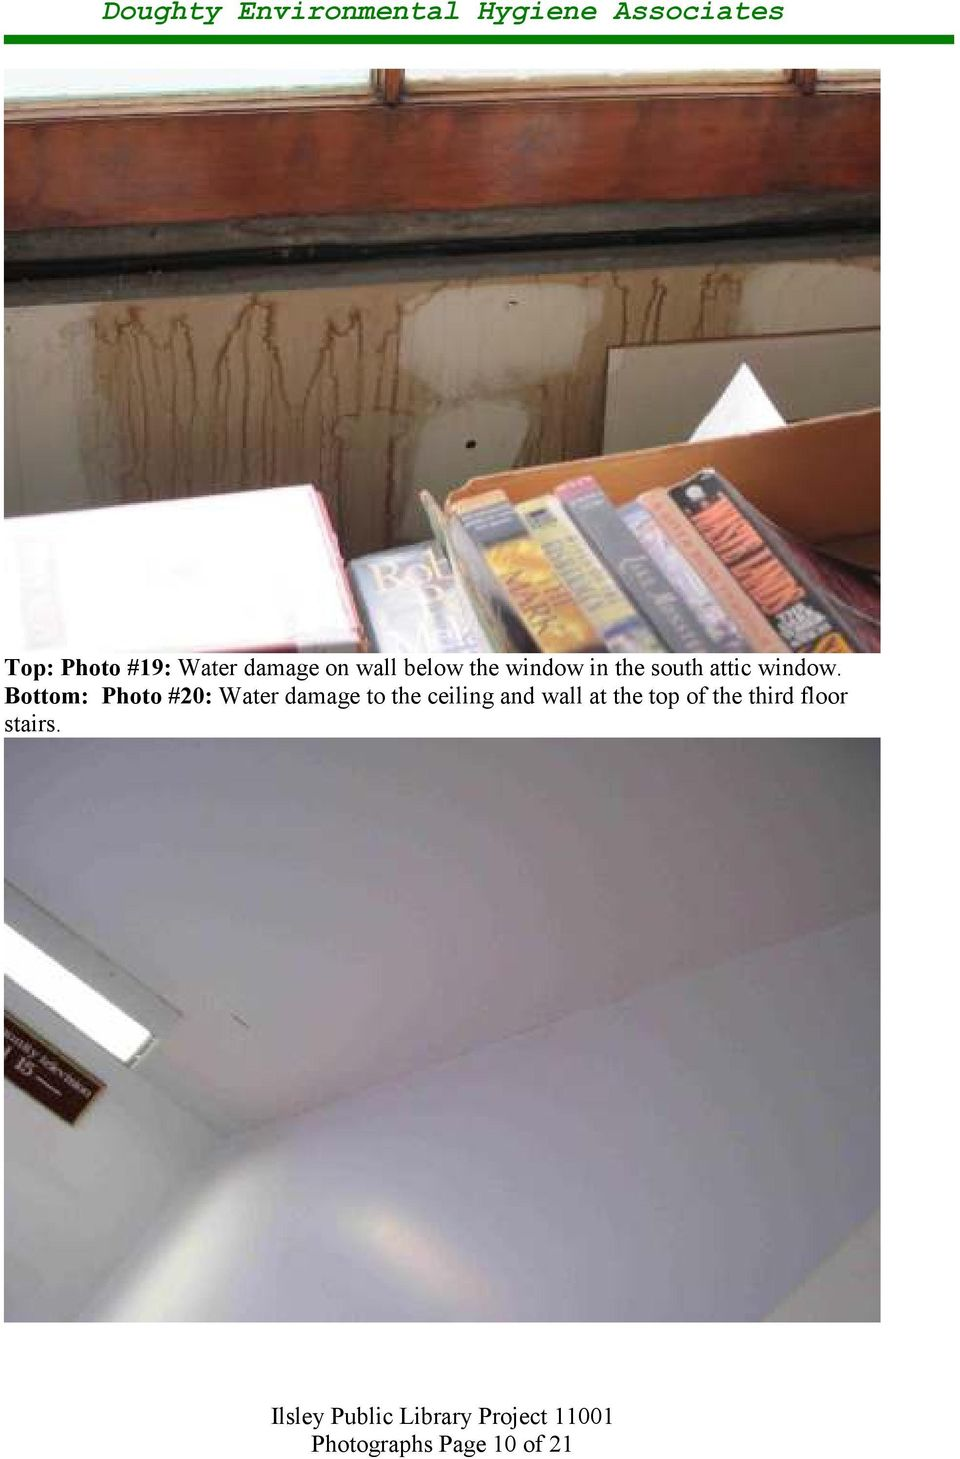 Bottom: Photo #20: Water damage to the ceiling